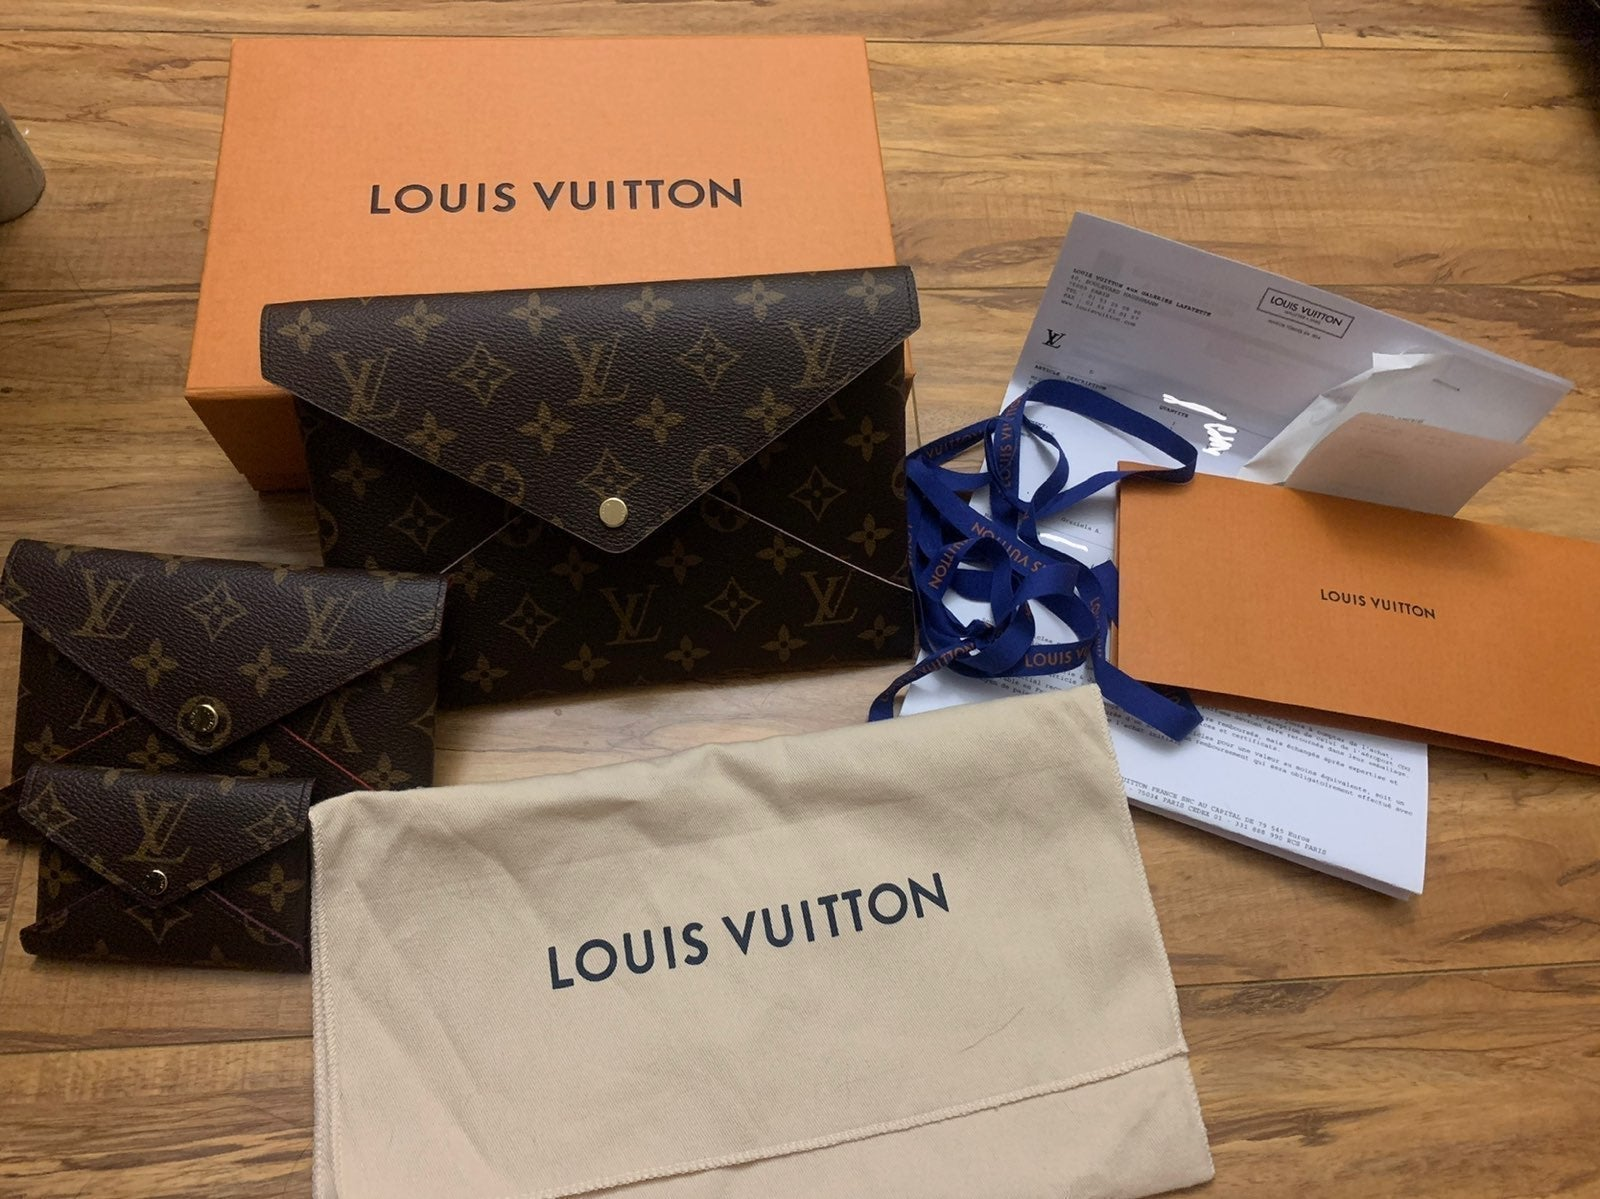 Louis Vuitton Kirigami Pochette - Large